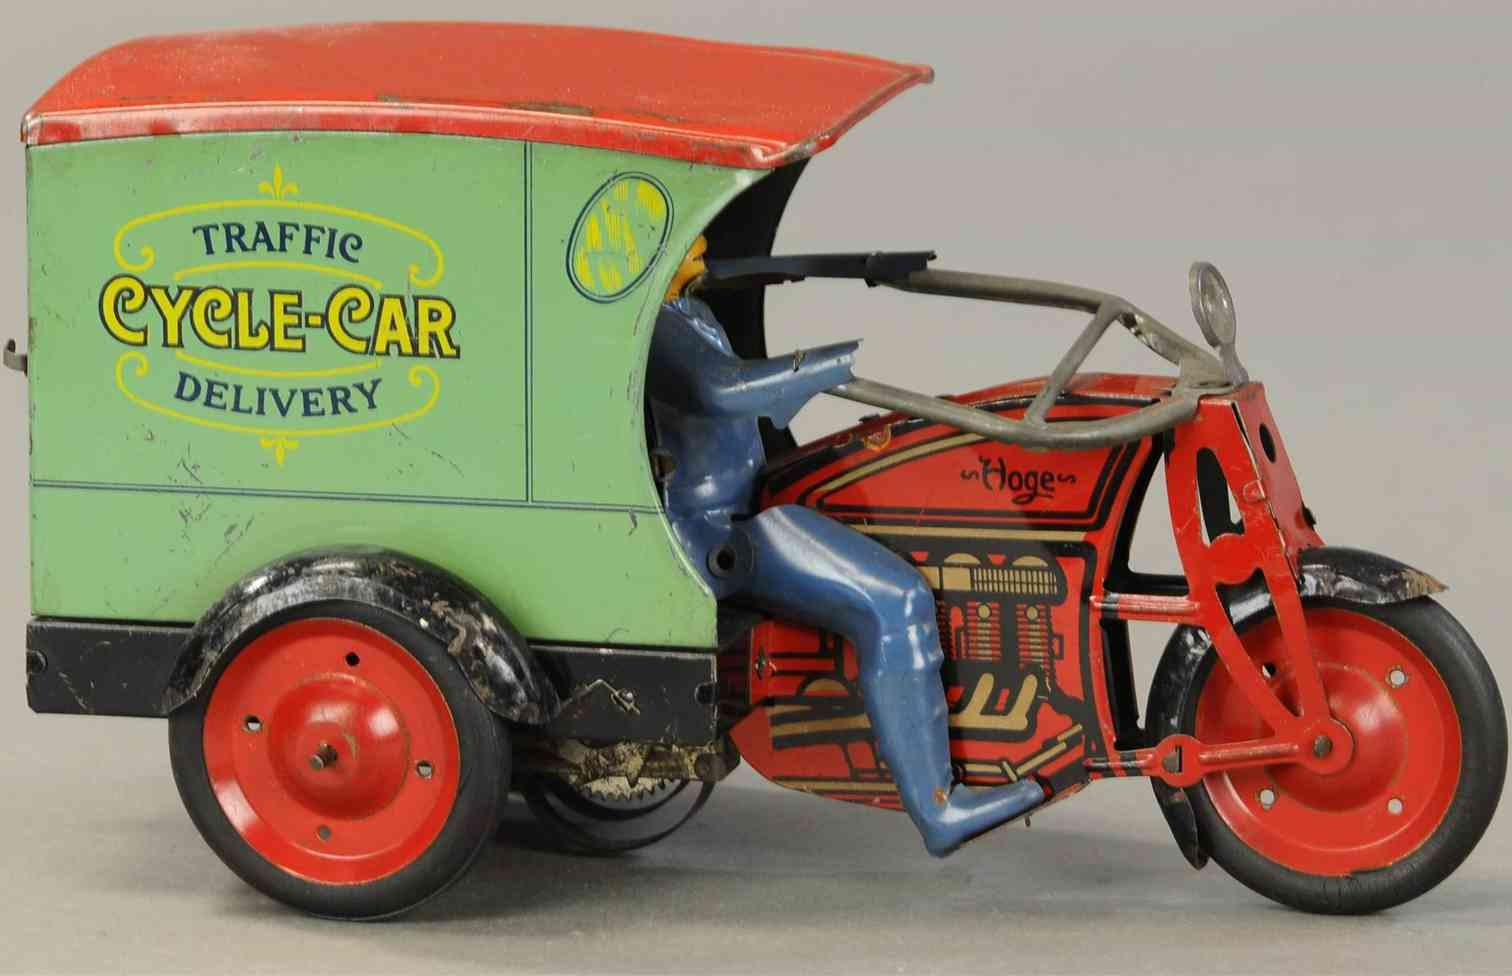 hoge mfg co tin toy motorcycle delivery wind-up